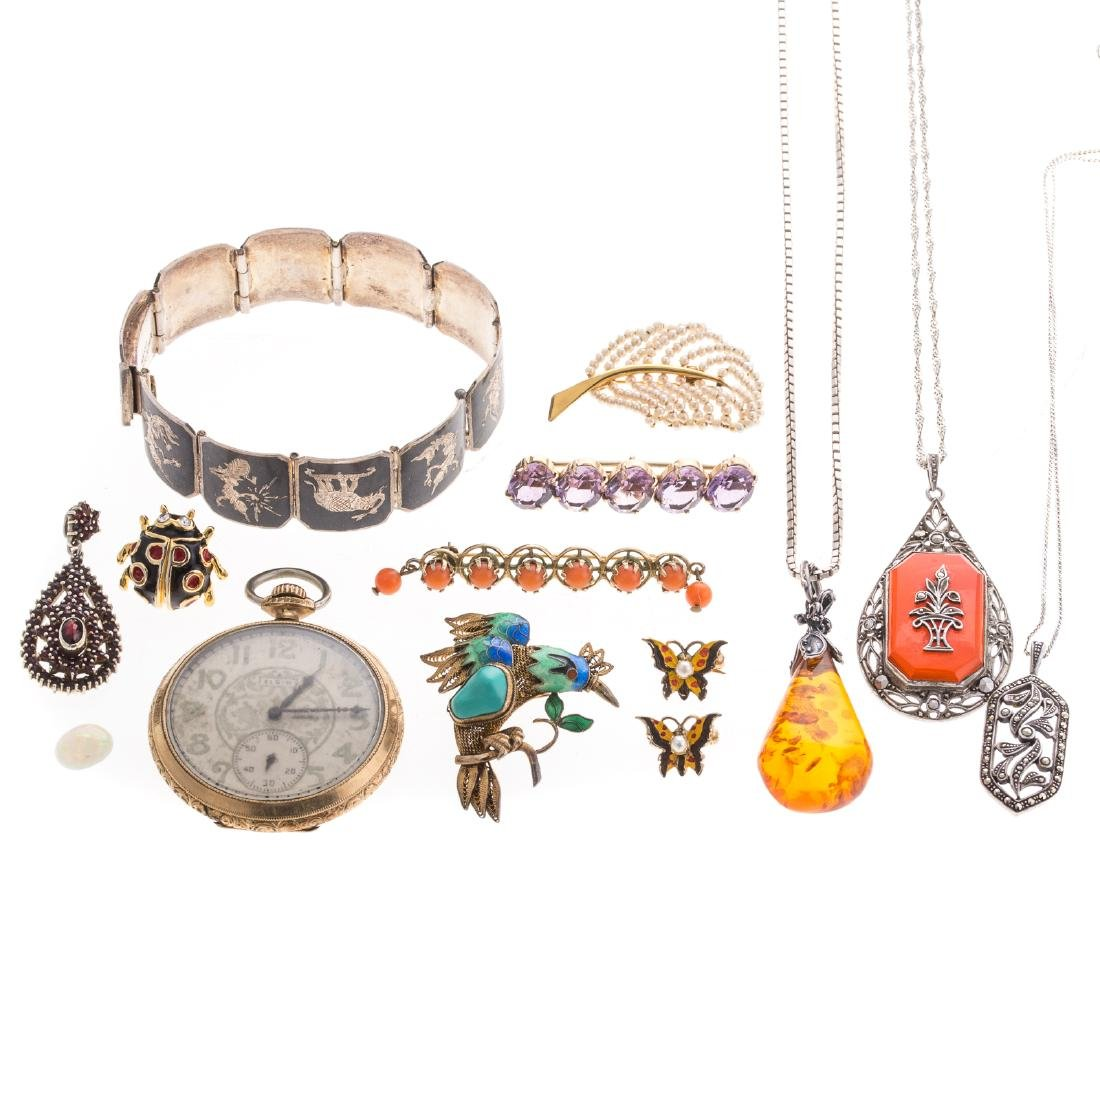 A Collection of Lady's Jewelry Featuring Amber